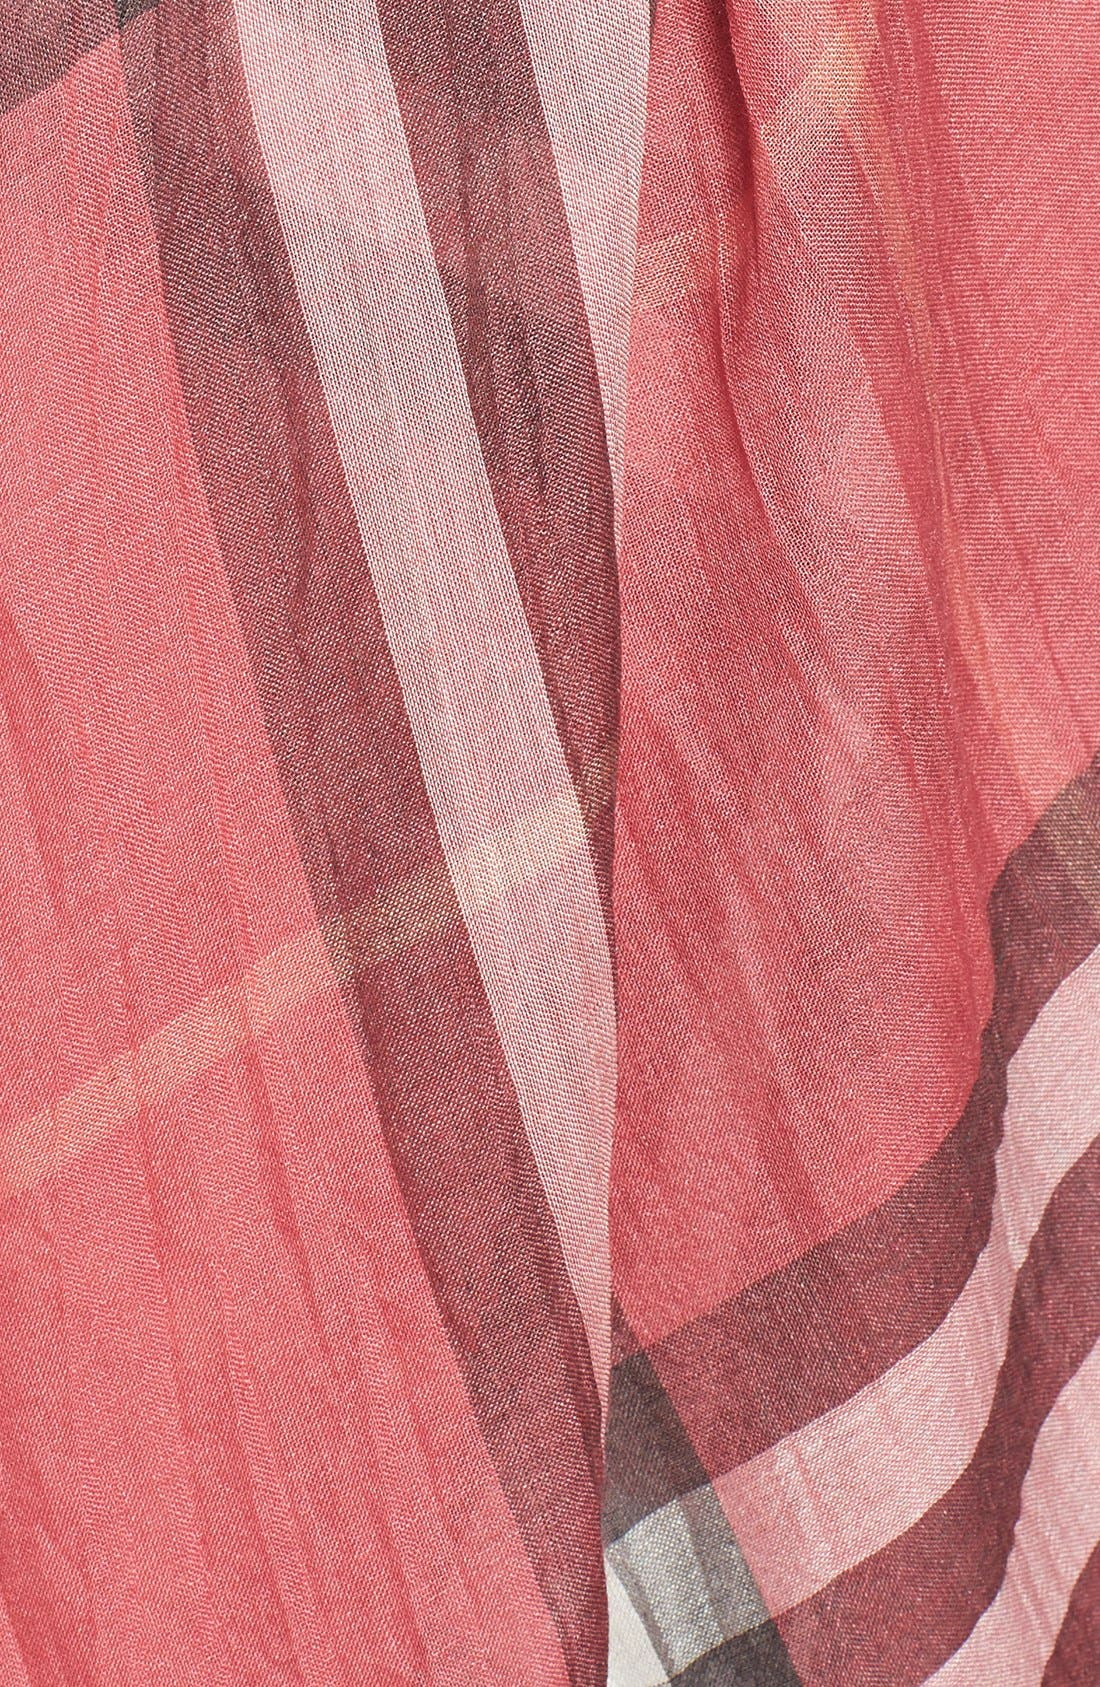 Giant Check Print Wool & Silk Scarf,                             Alternate thumbnail 109, color,